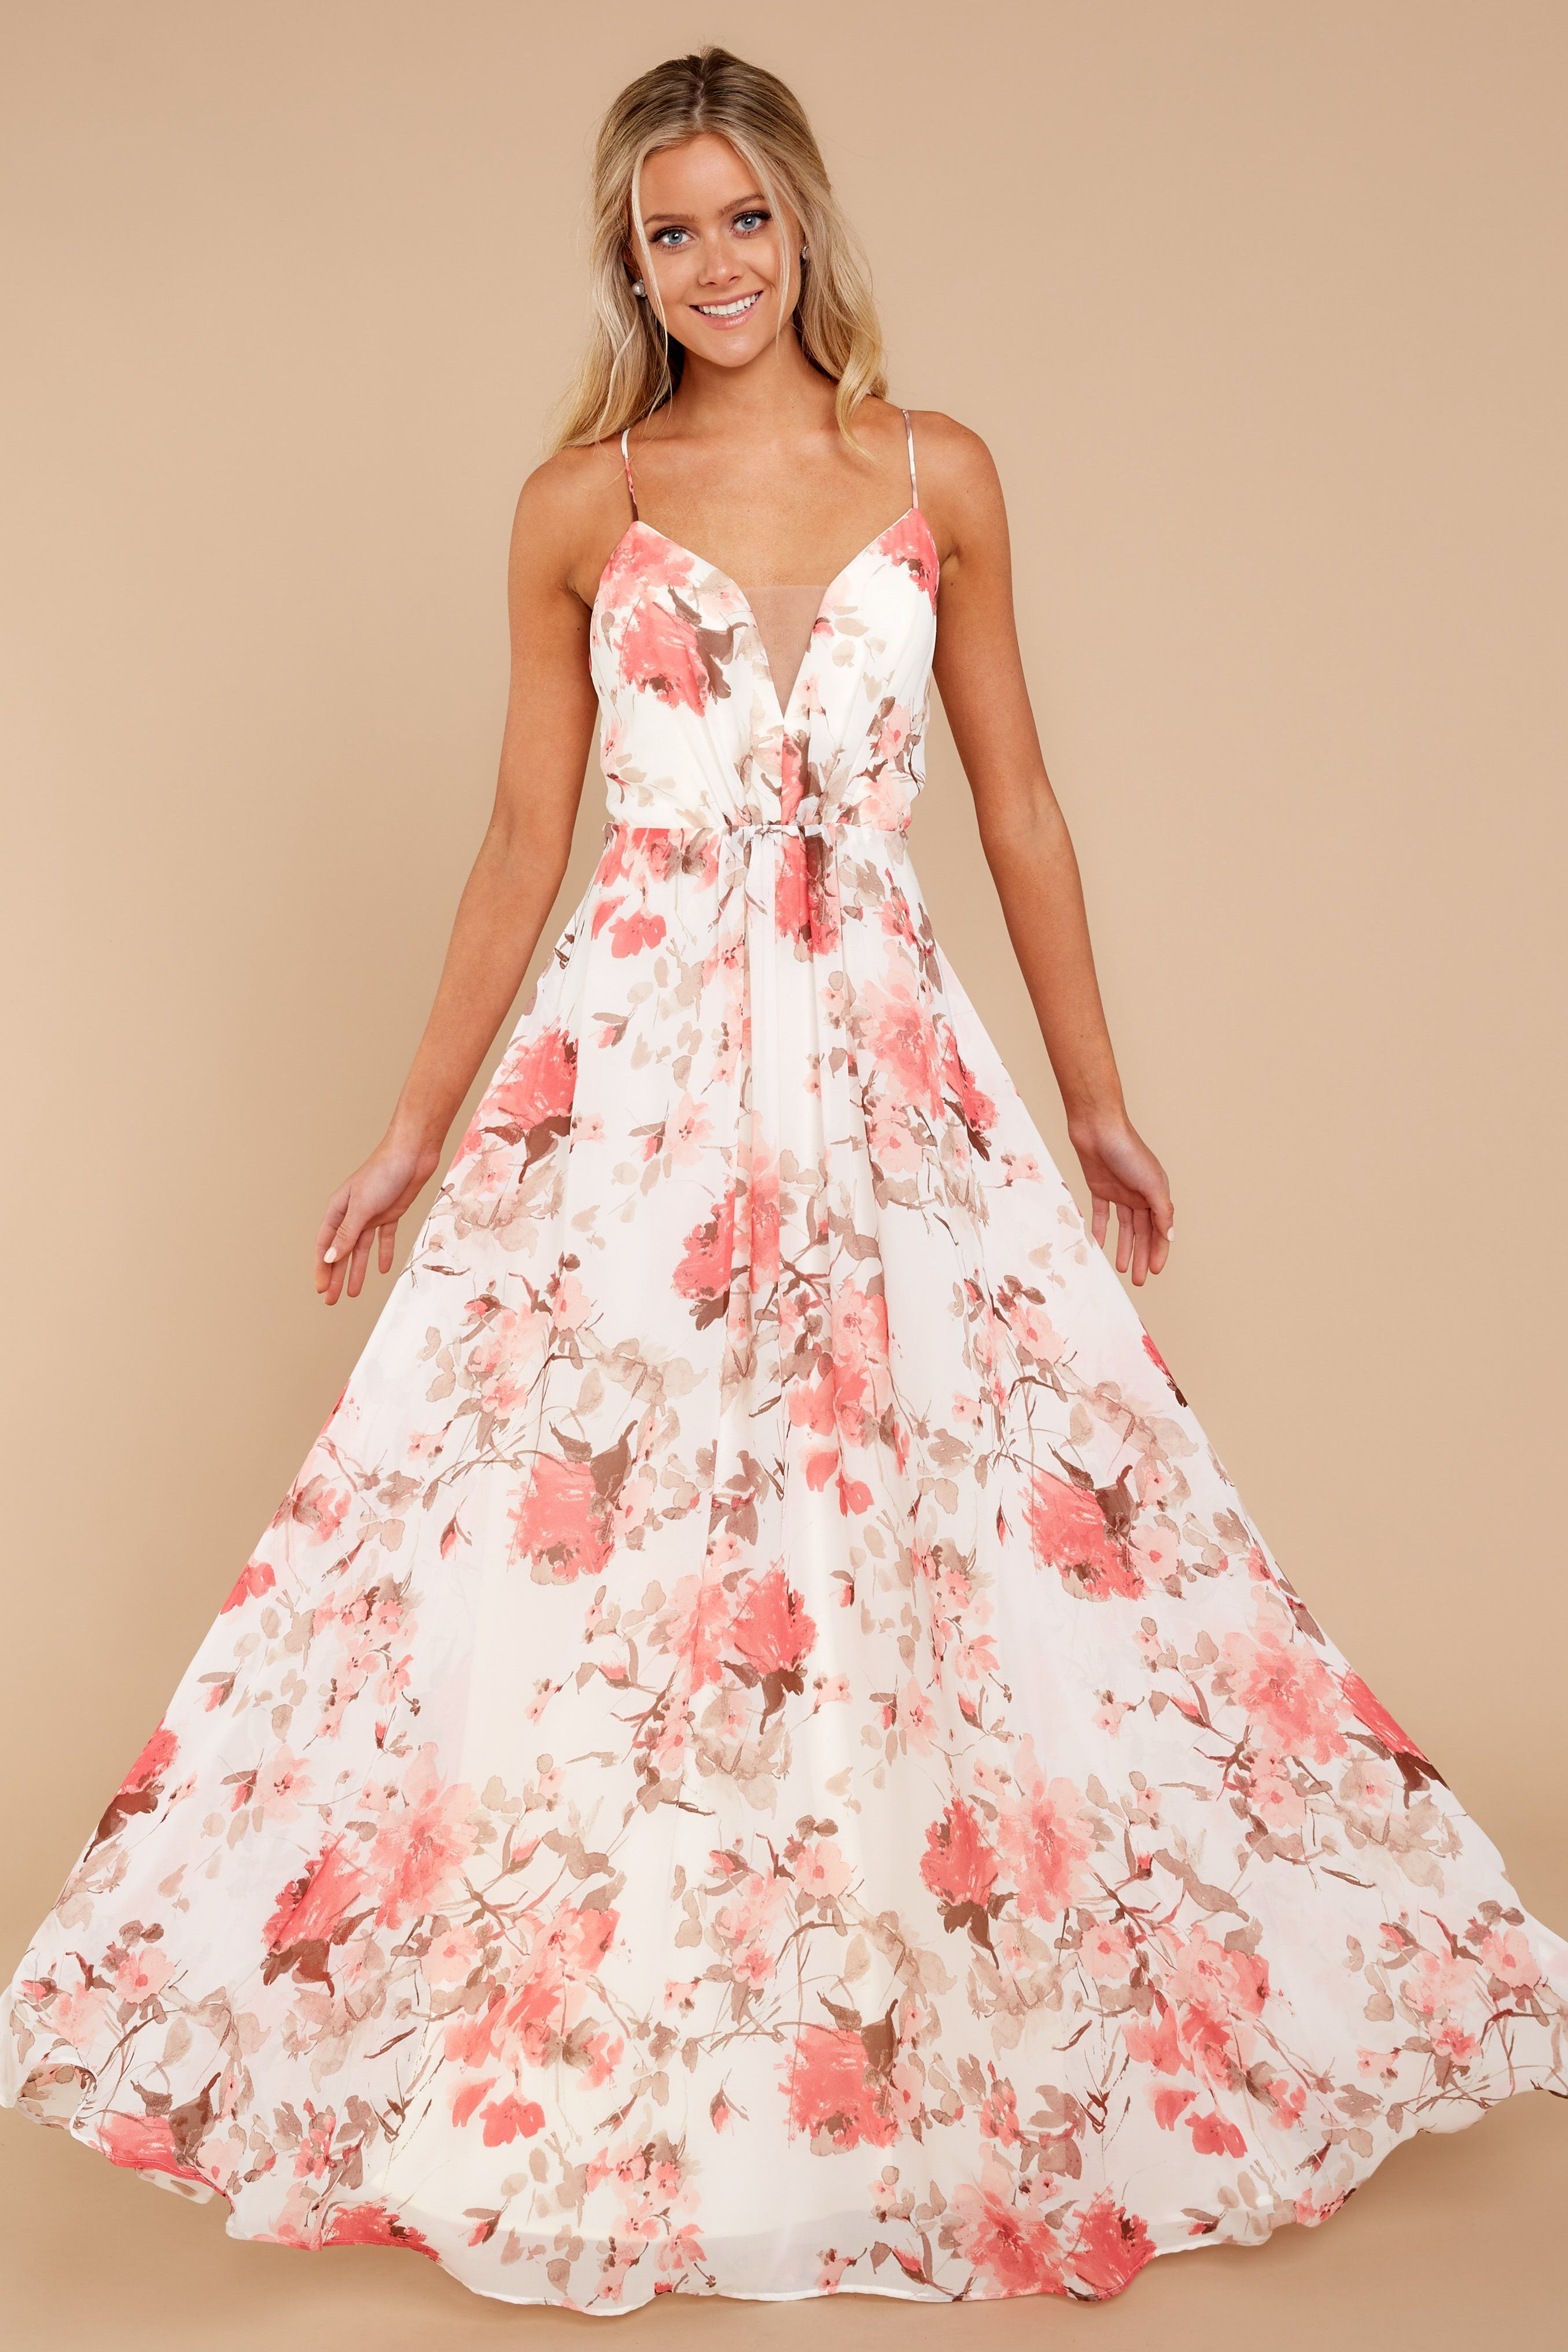 22339e2f86 Adorable Ivory Floral Print Maxi Dress - Chic Maxi Dress - Dress - $74.00 – Red  Dress Boutique